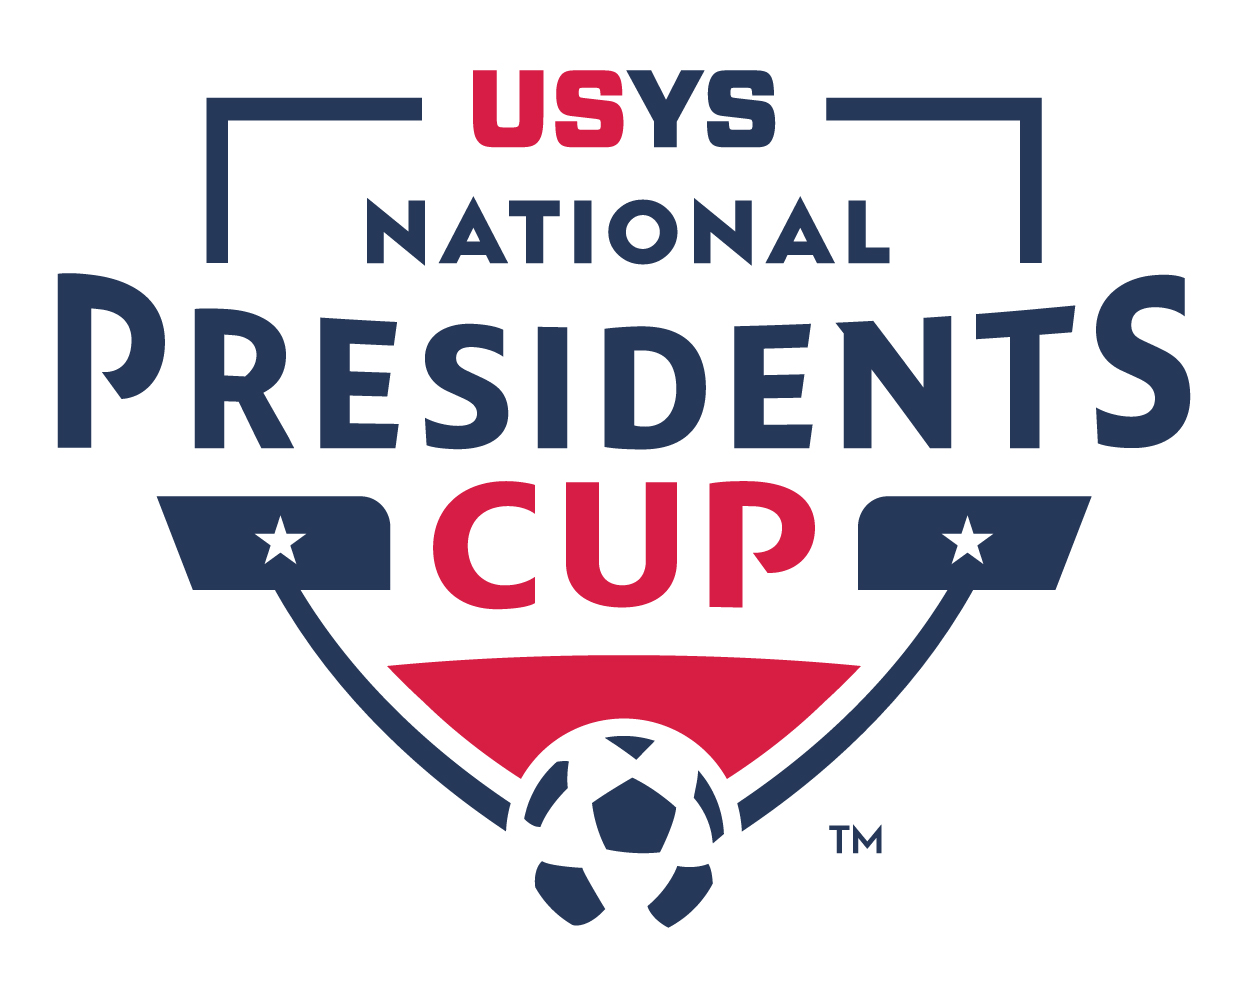 Presidents Cup - Programs   <b>US Youth Soccer</b>